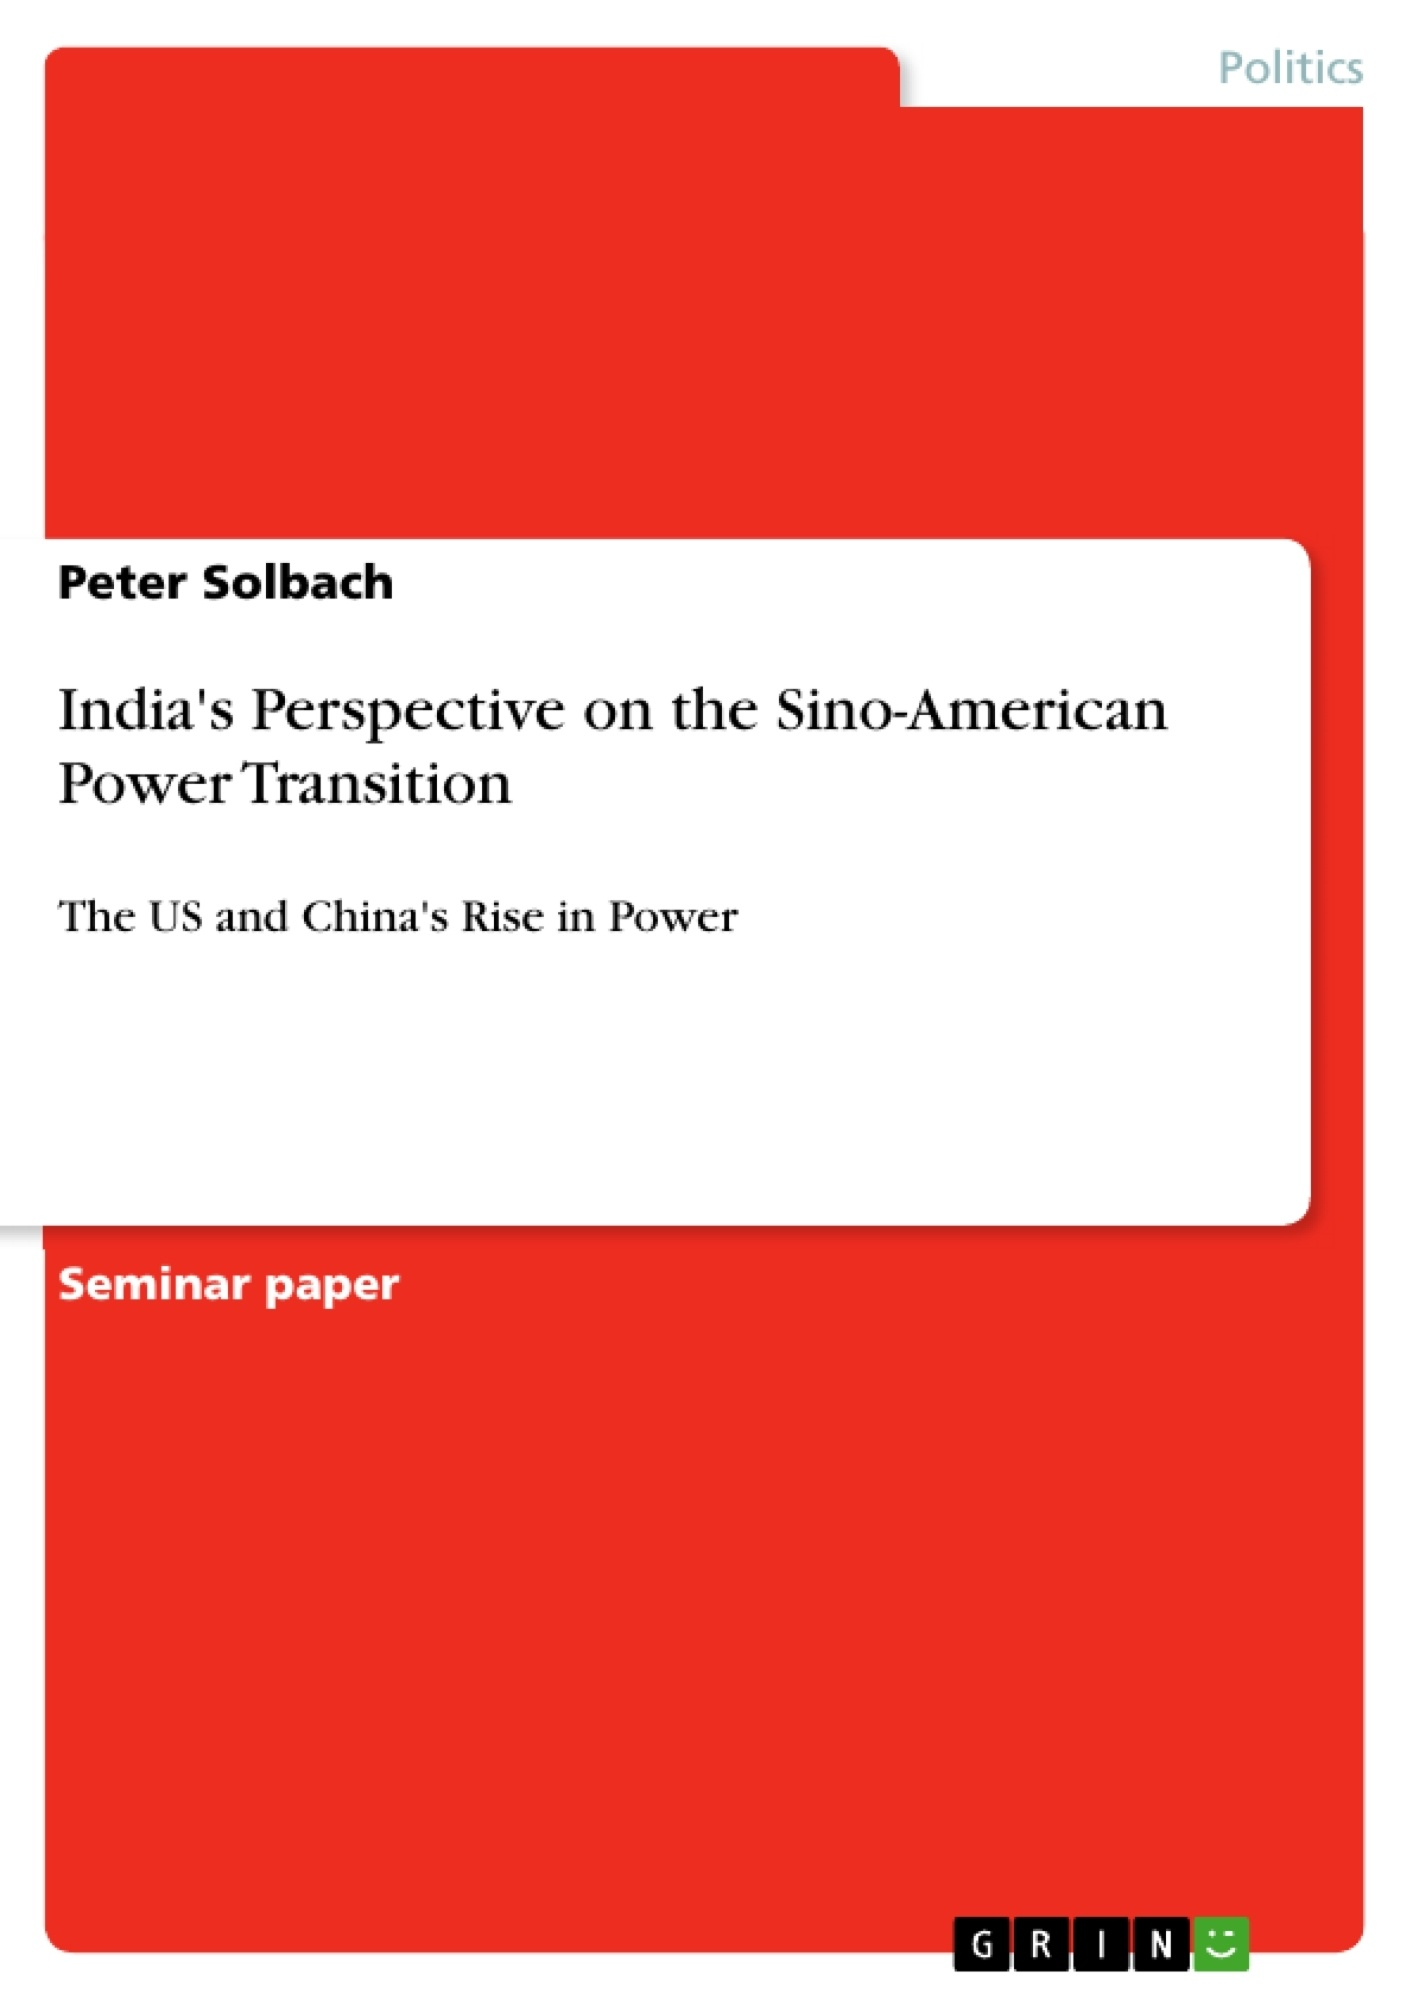 Title: India's Perspective on the Sino-American Power Transition